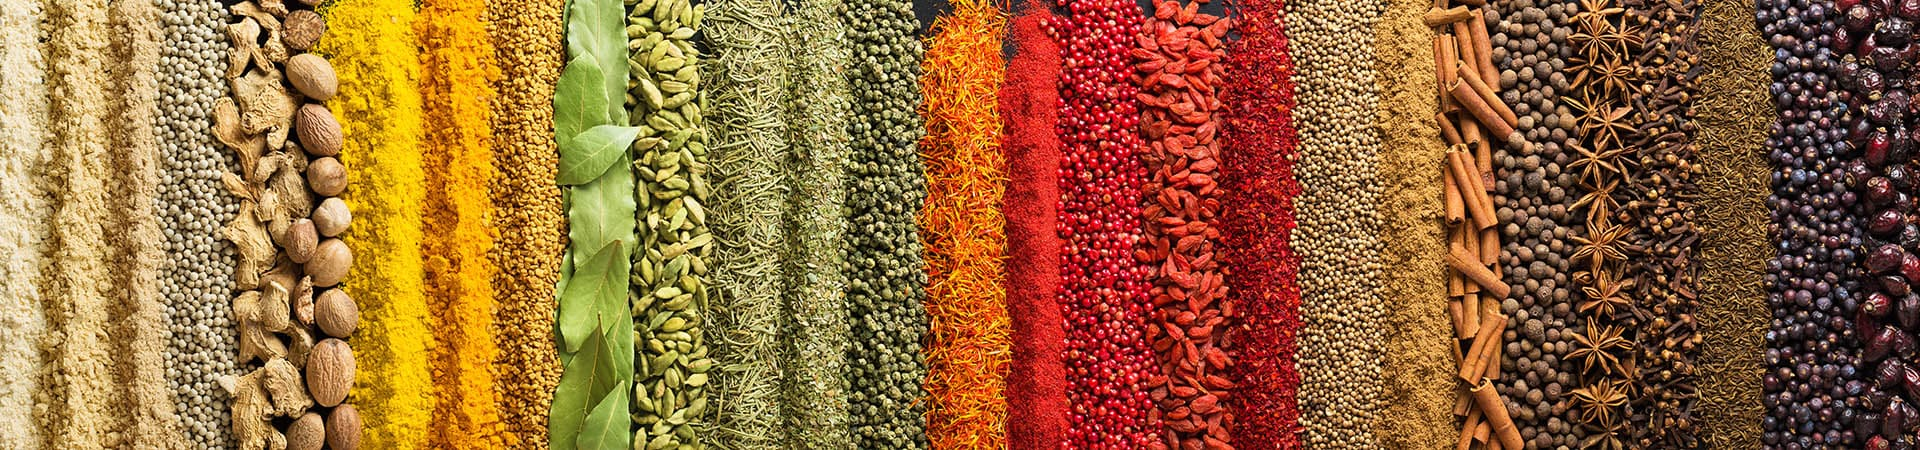 spice and extract manufacturing